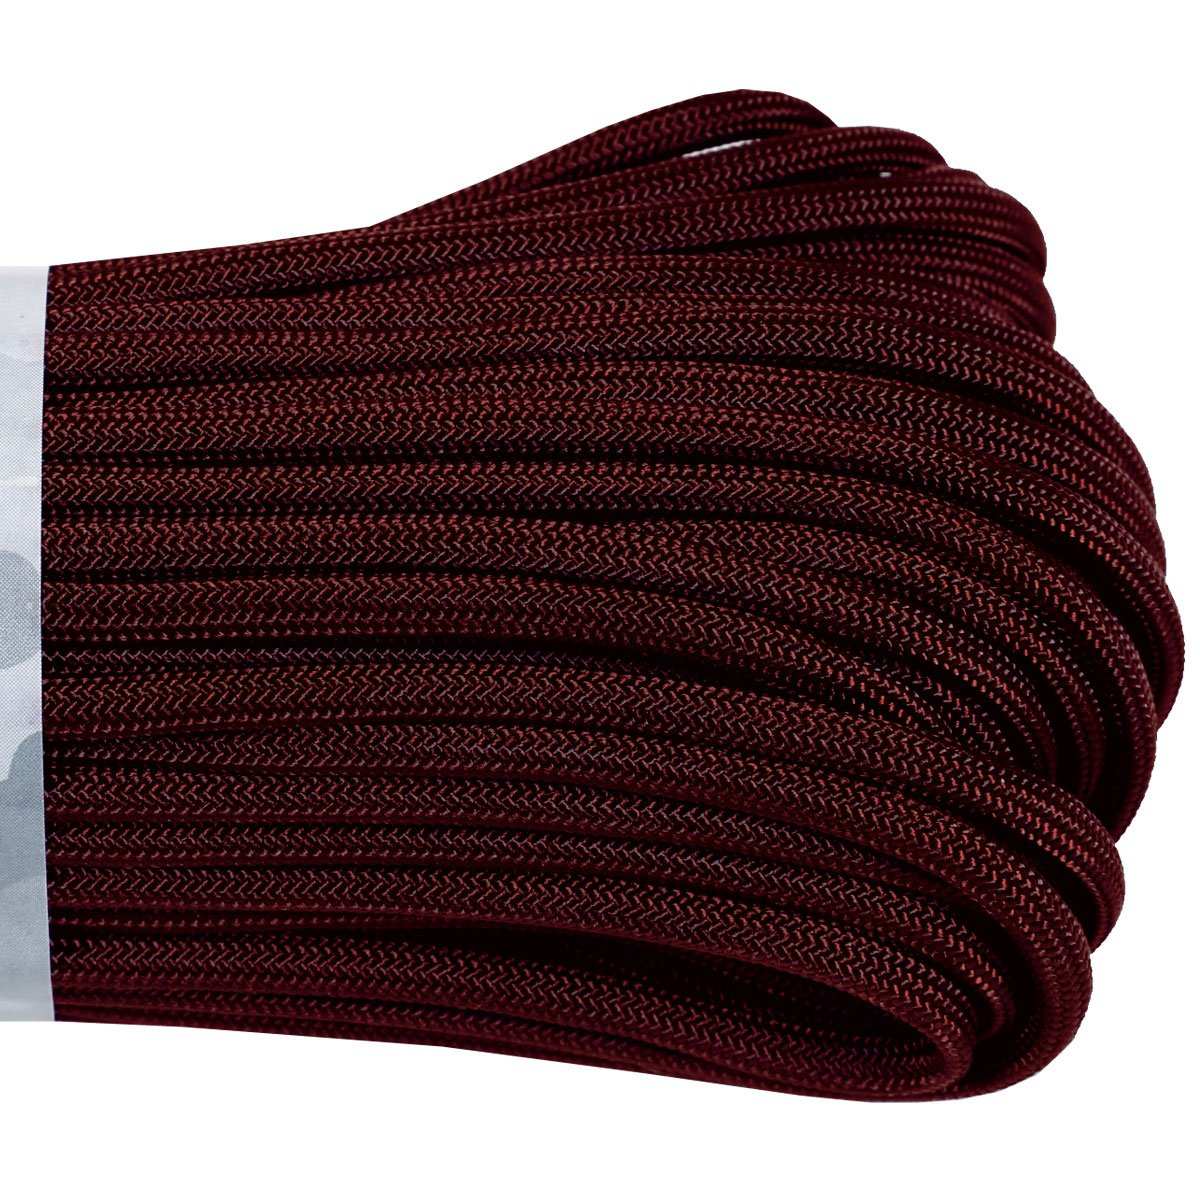 550 Type III Paracord Made in USA - 100 ft - Maroon